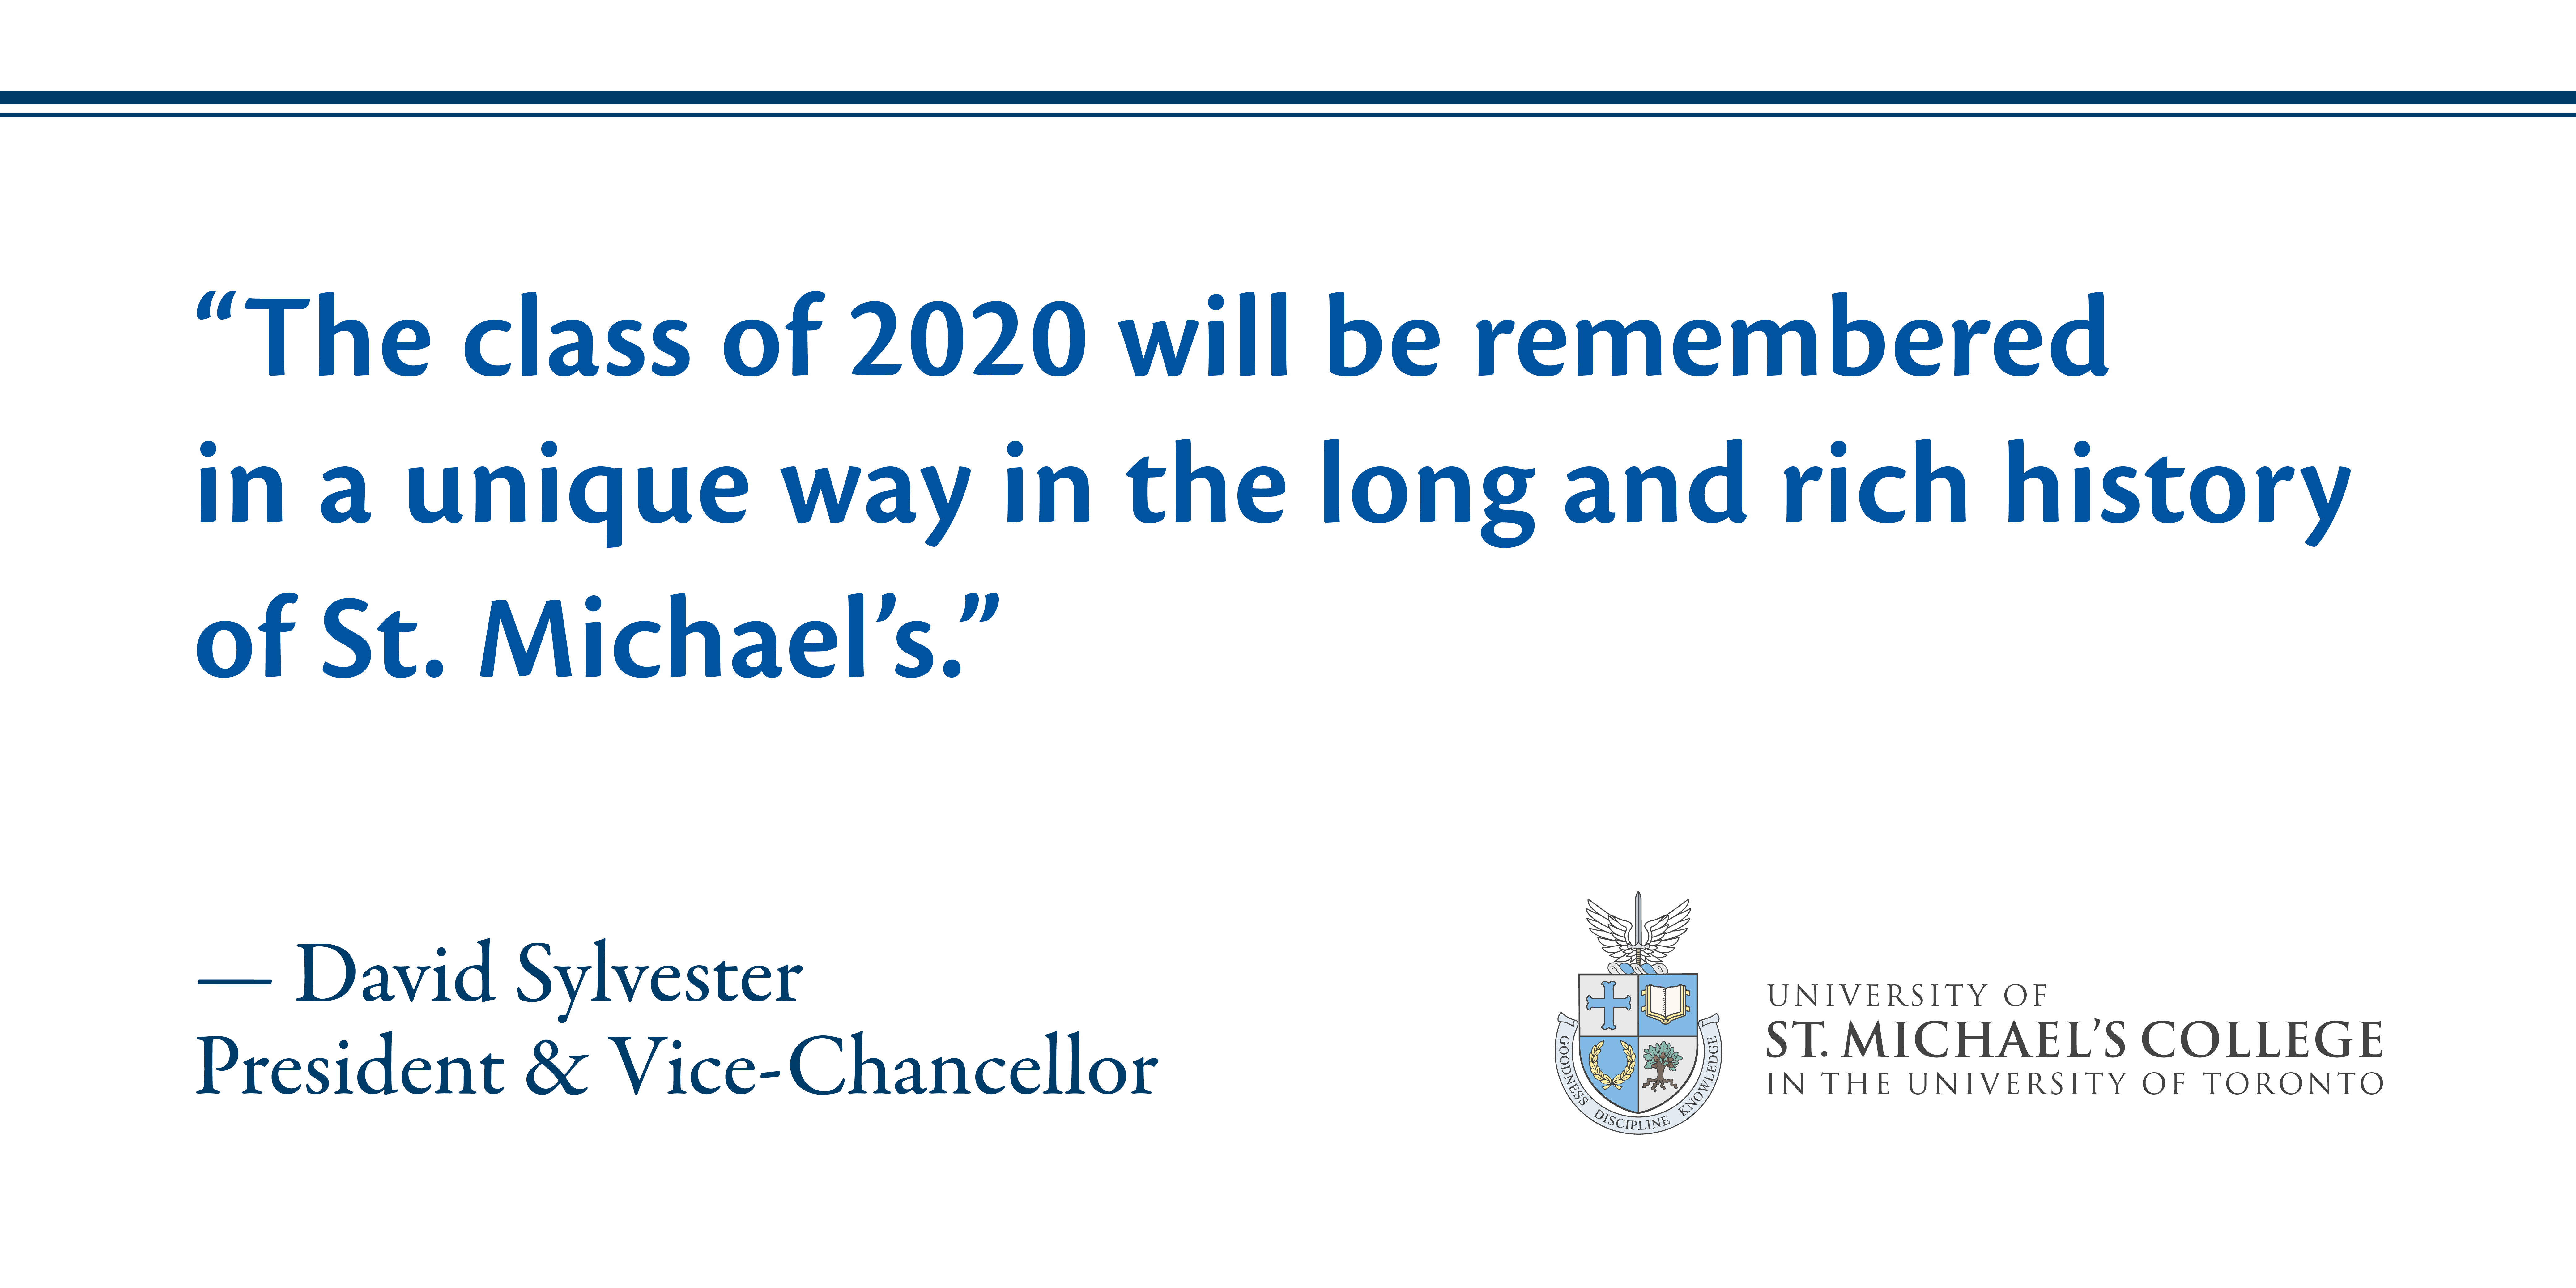 "Image contains a quotation from St. Michael's President David Sylvester says ""The class of 2020 will be remembered in a unique way in the long and rich history of St. Michael's."" """